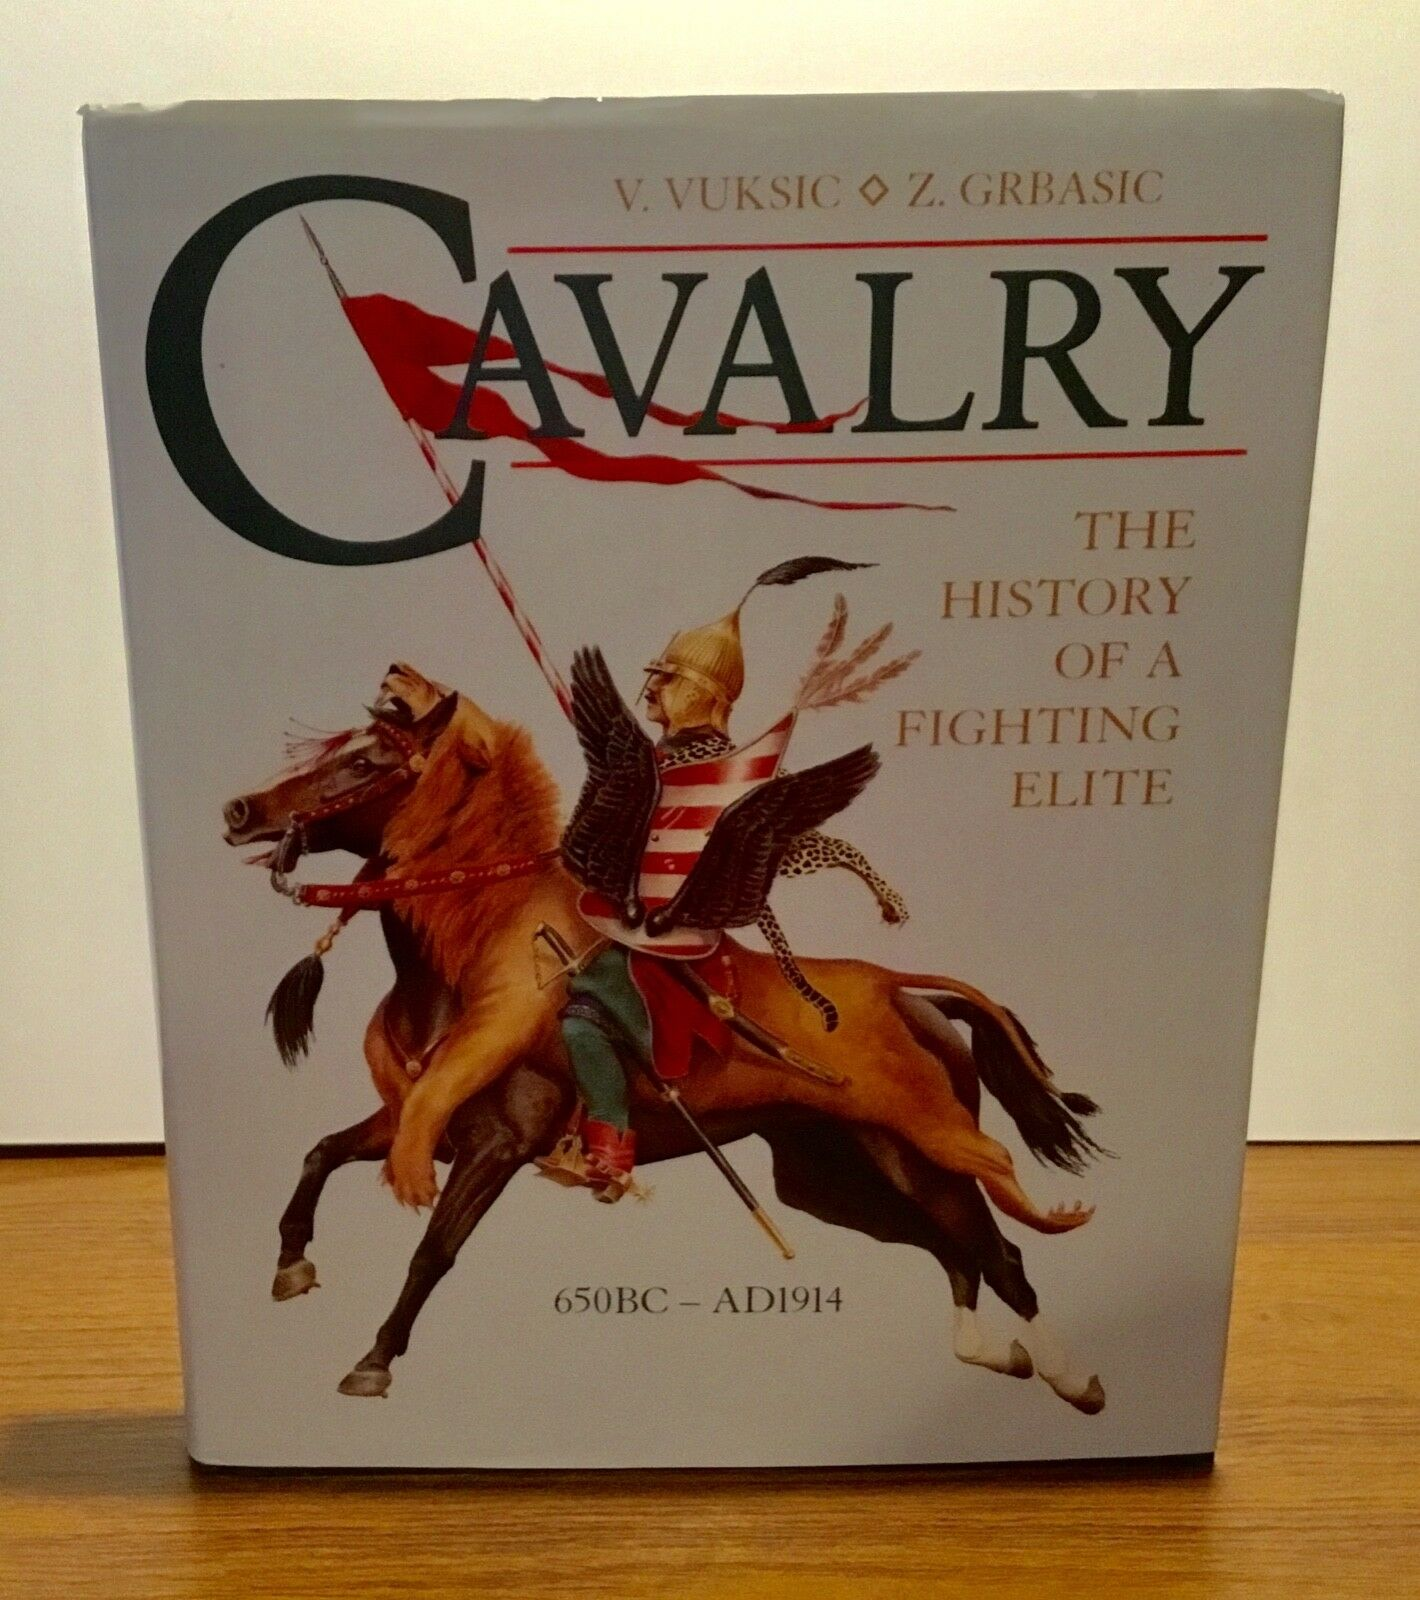 Cavalry: The History Of A Fighting Elite 650 BC - 1914 AD